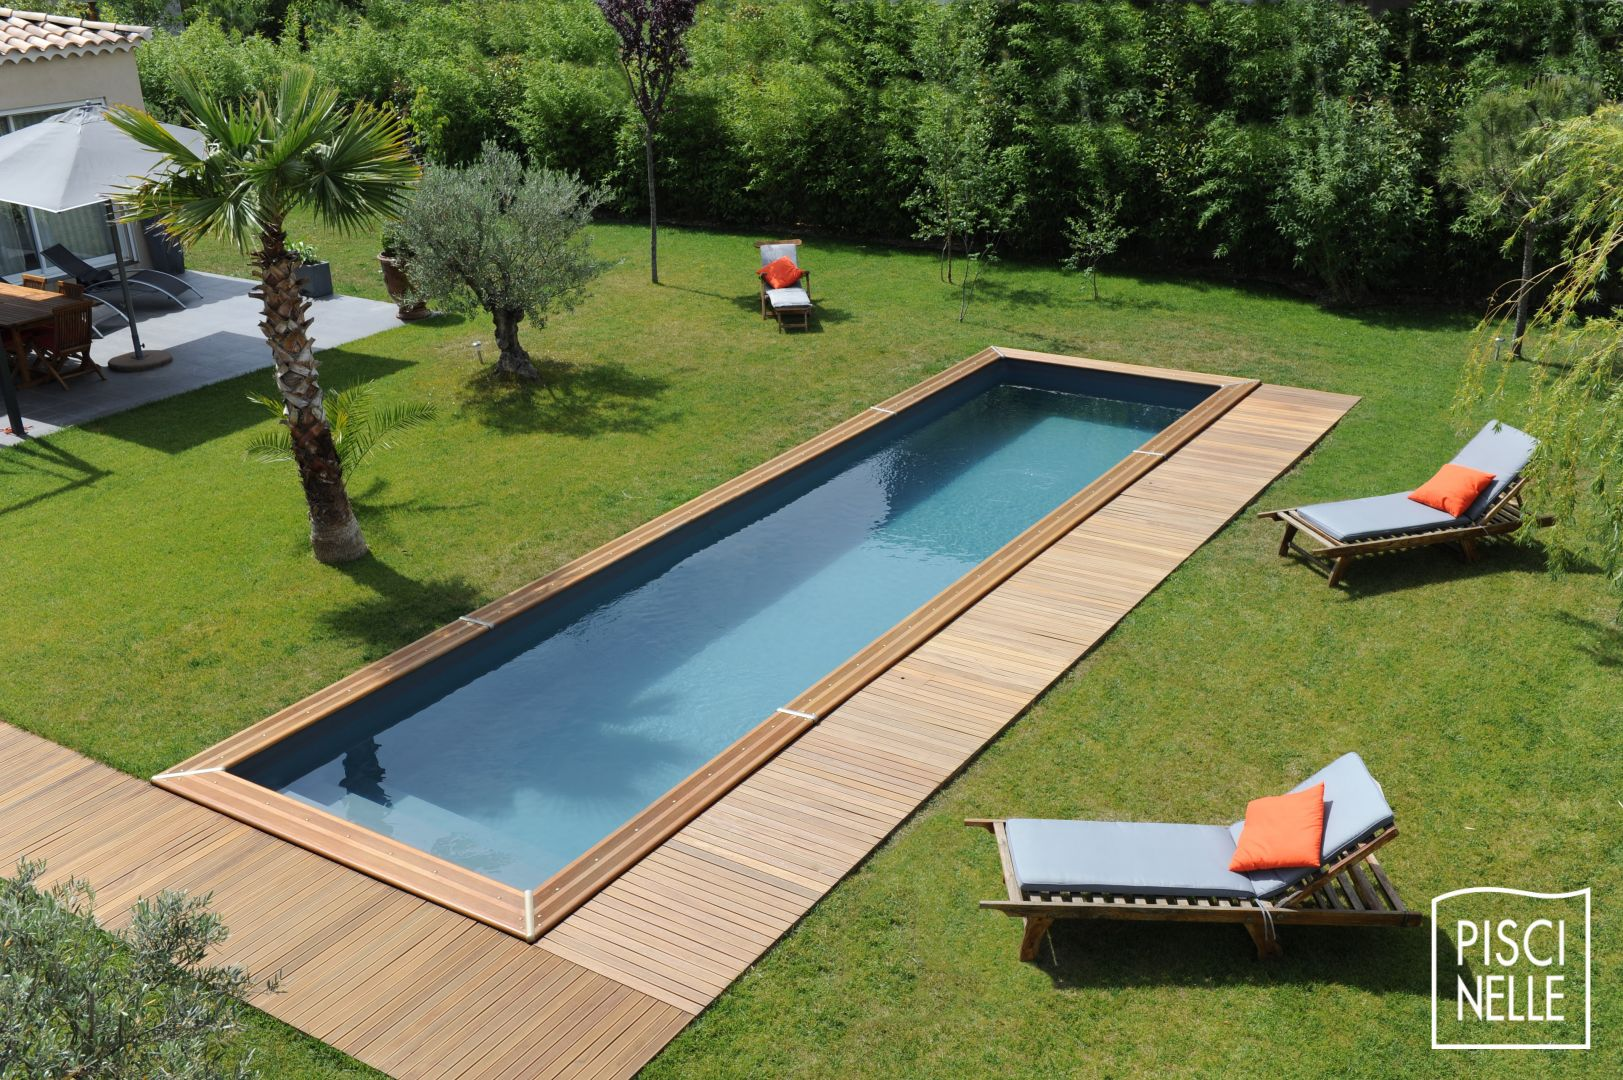 Piscine enterr e les piscines enterr es en kit par for Prix piscine 6 x 3